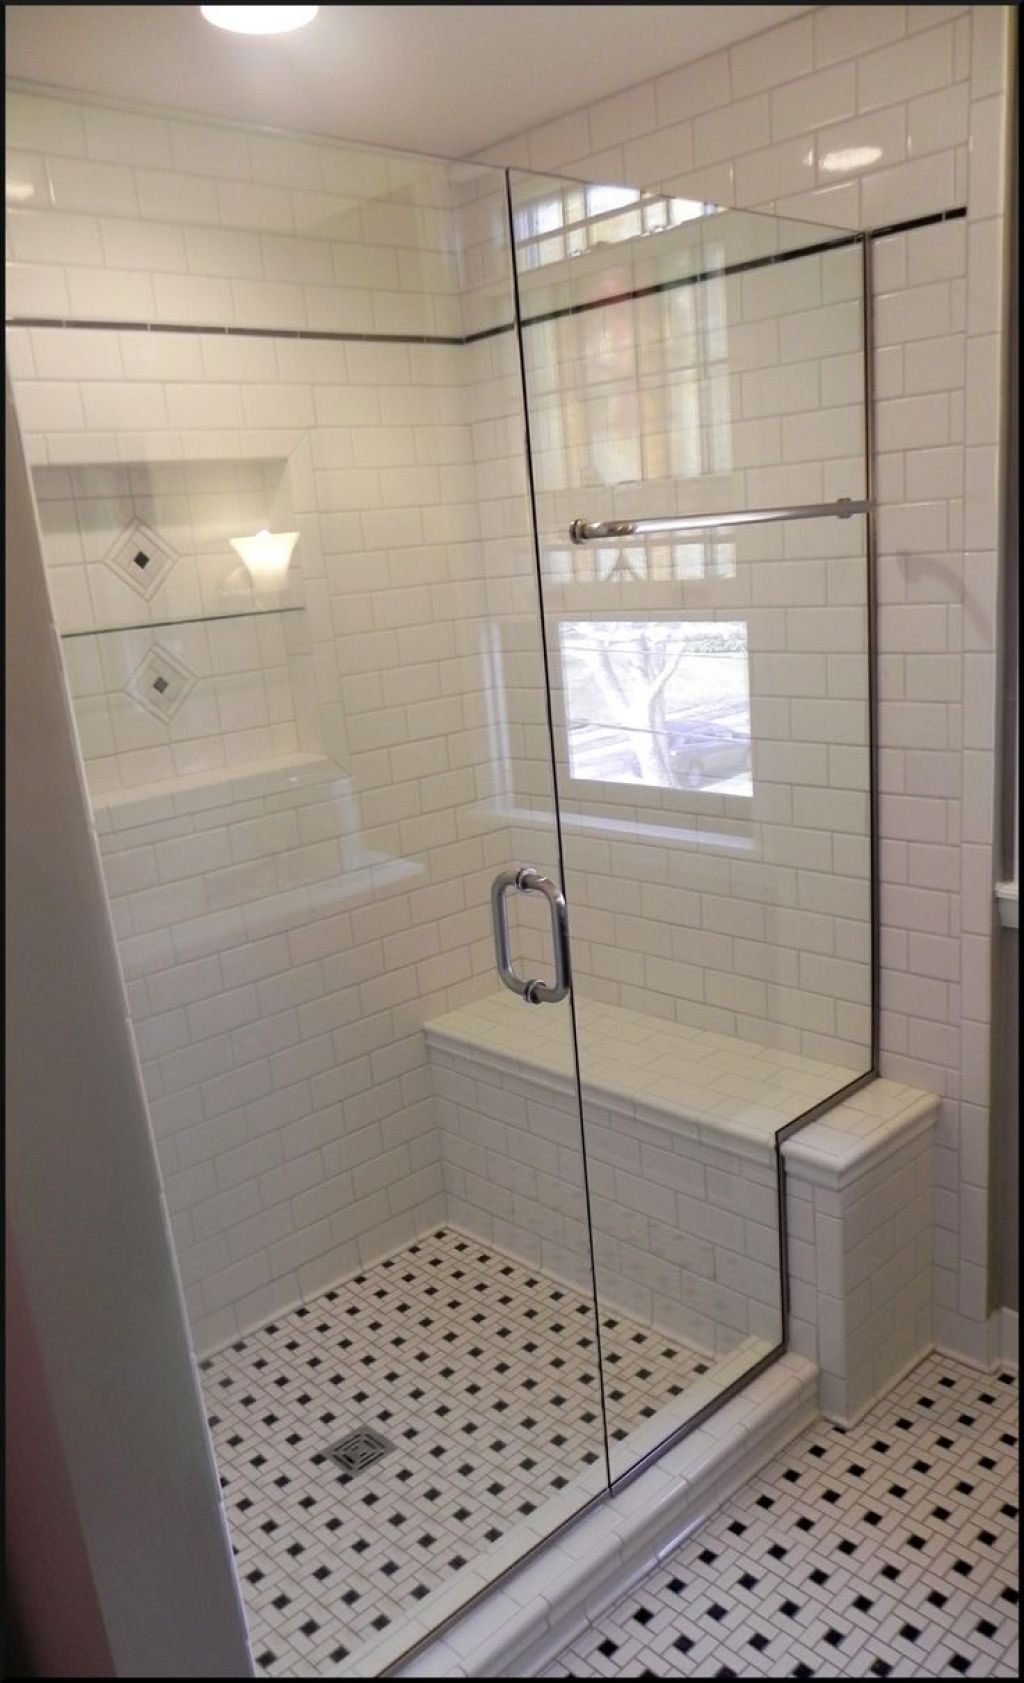 Bathroom Shower Stalls With Seats | Shower seat, Tile ideas and ...